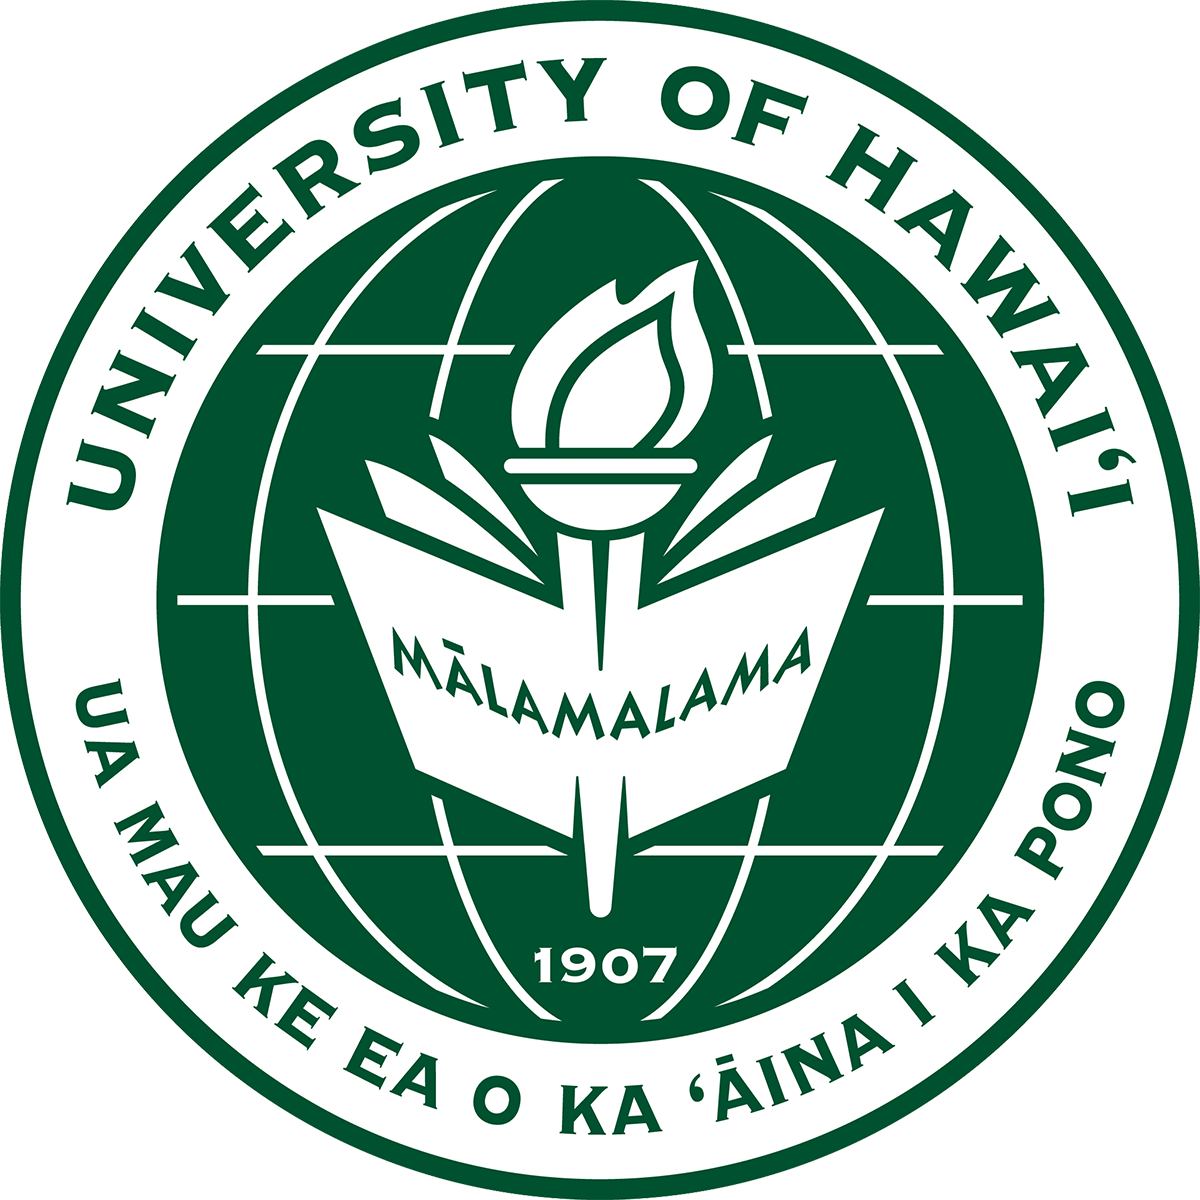 University of Hawai'i, Manoa